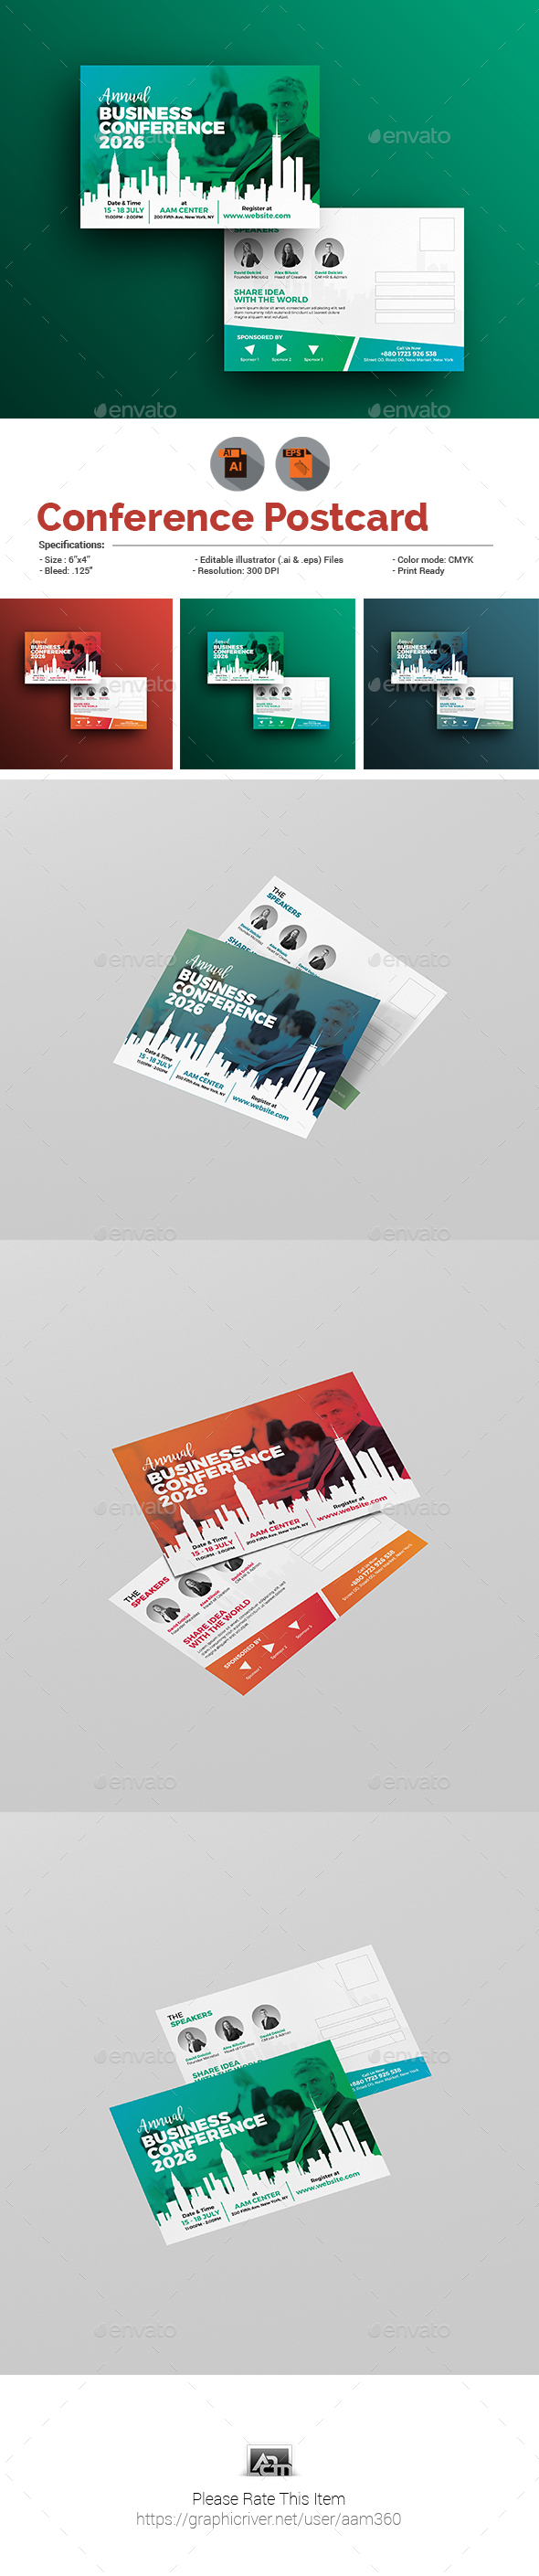 Business Conference or Event Postcard - Cards & Invites Print Templates